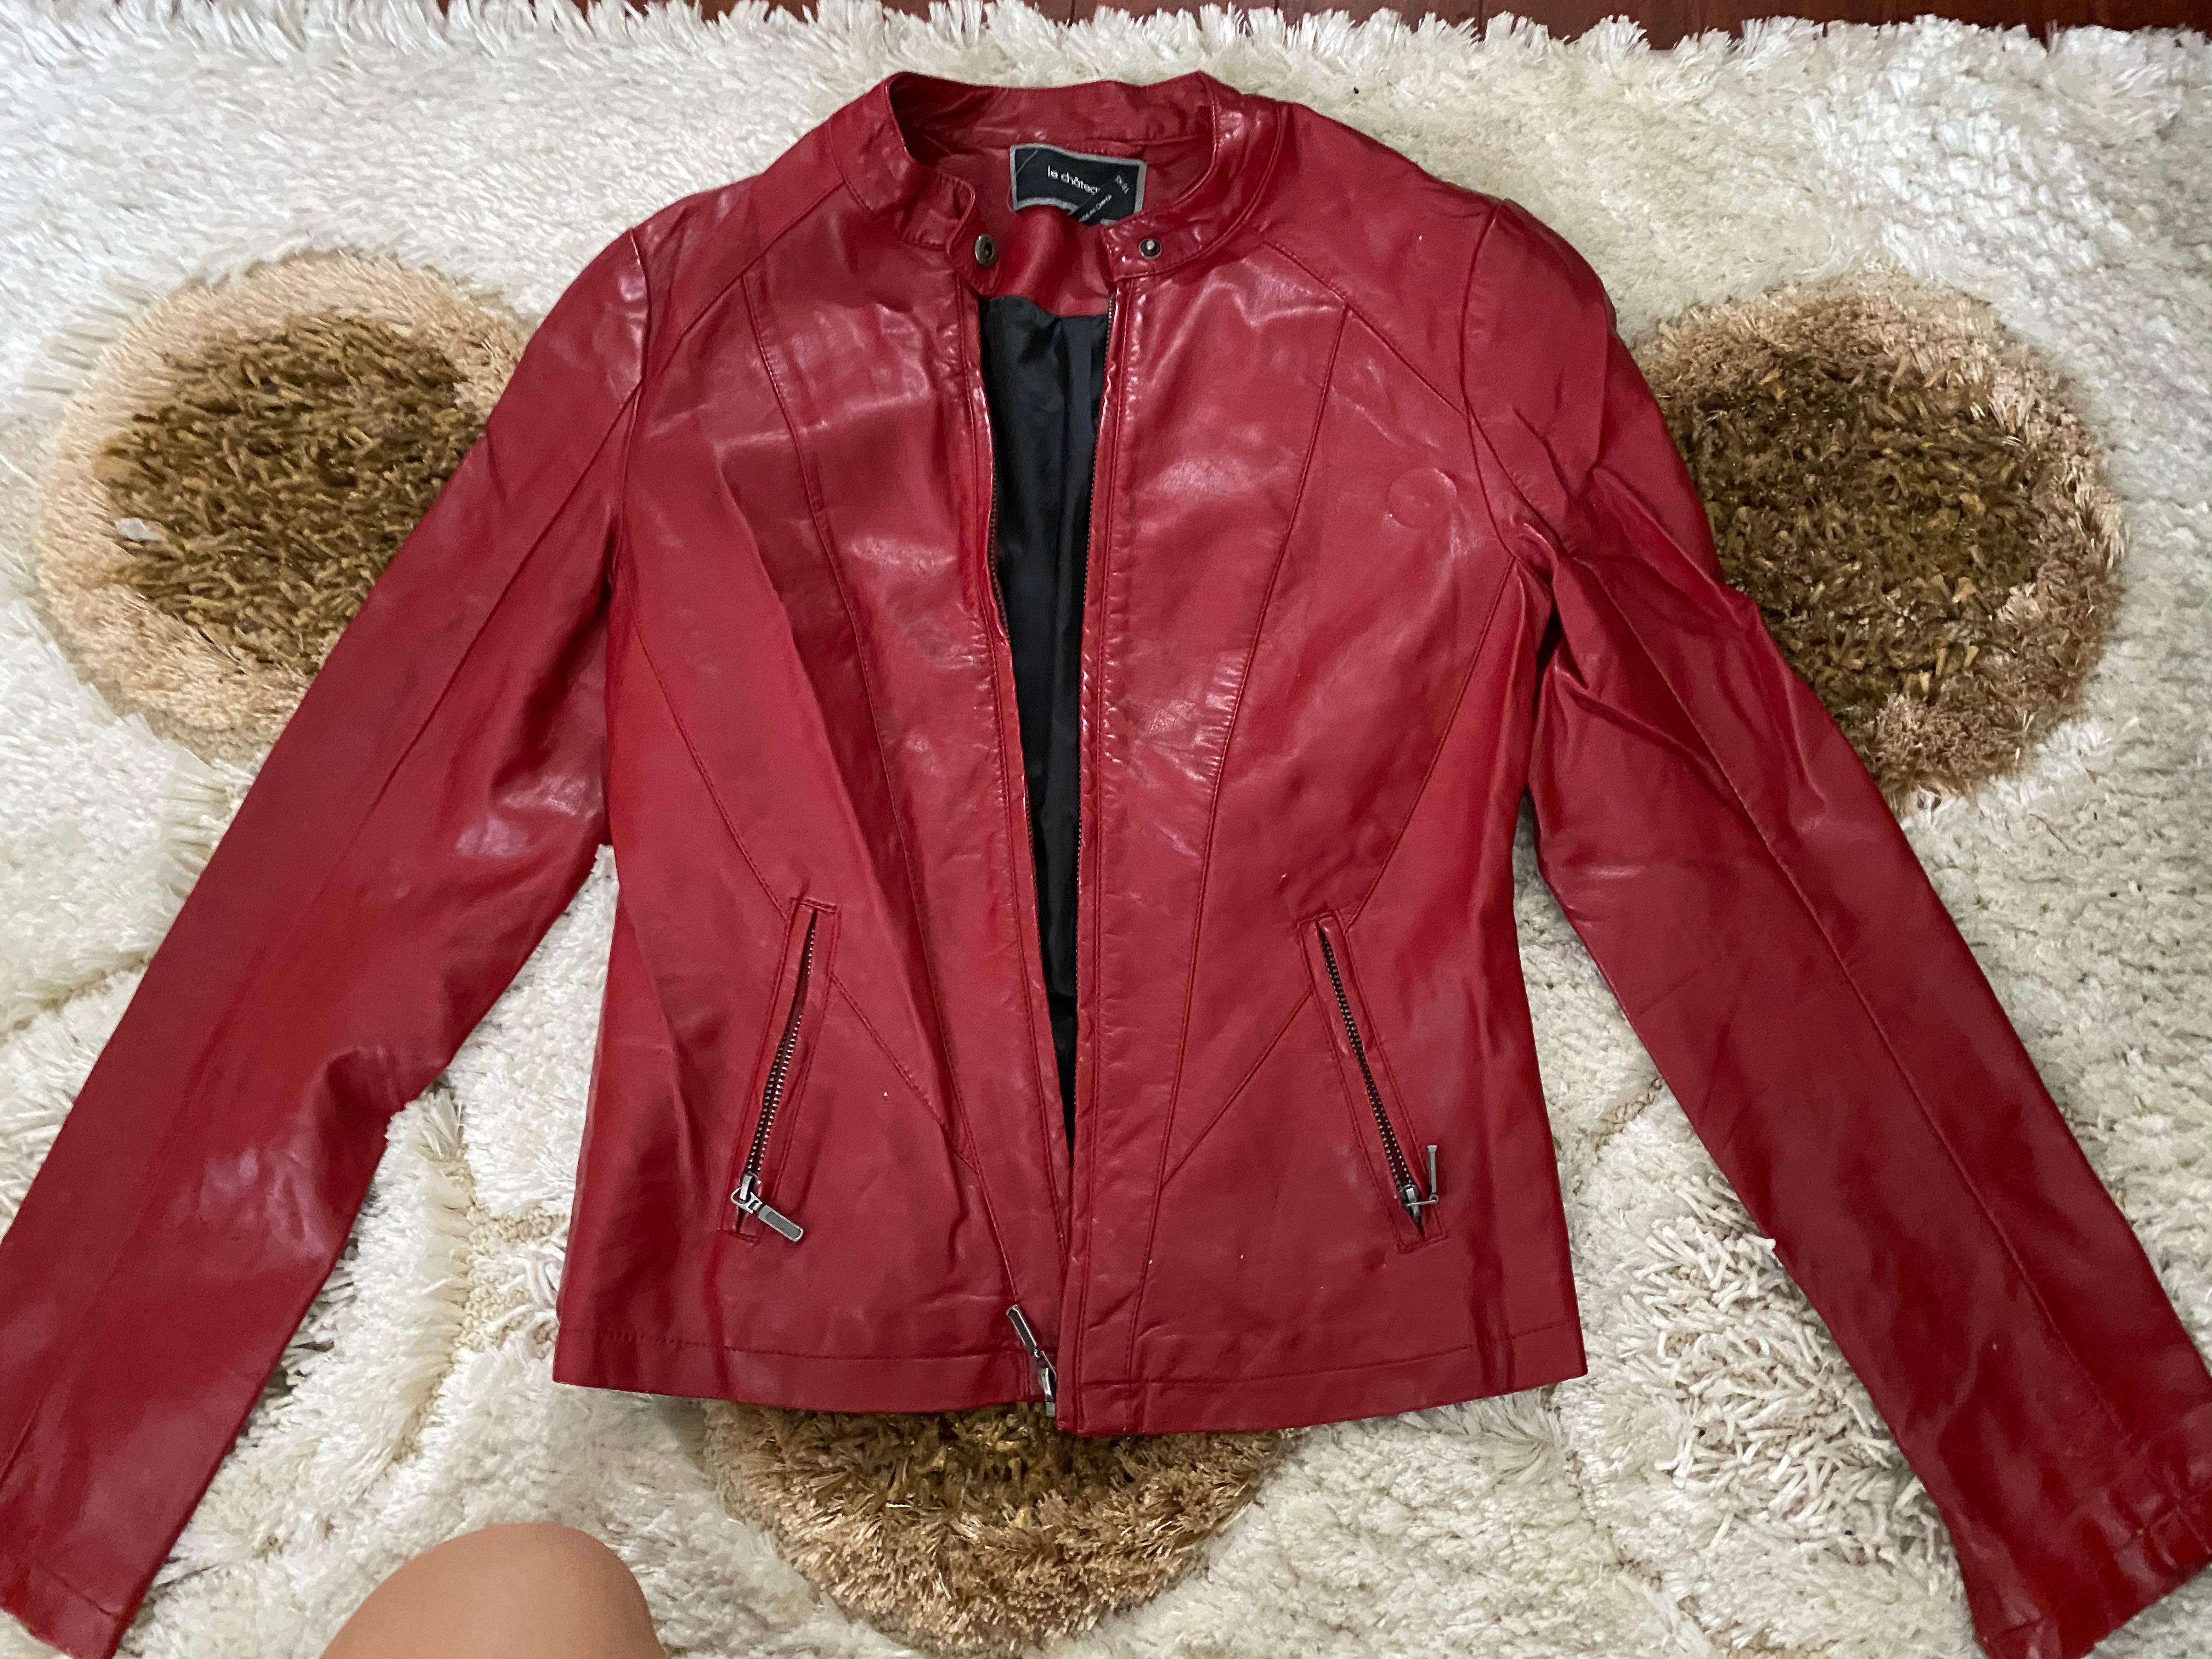 Le Chateau red leather jacket